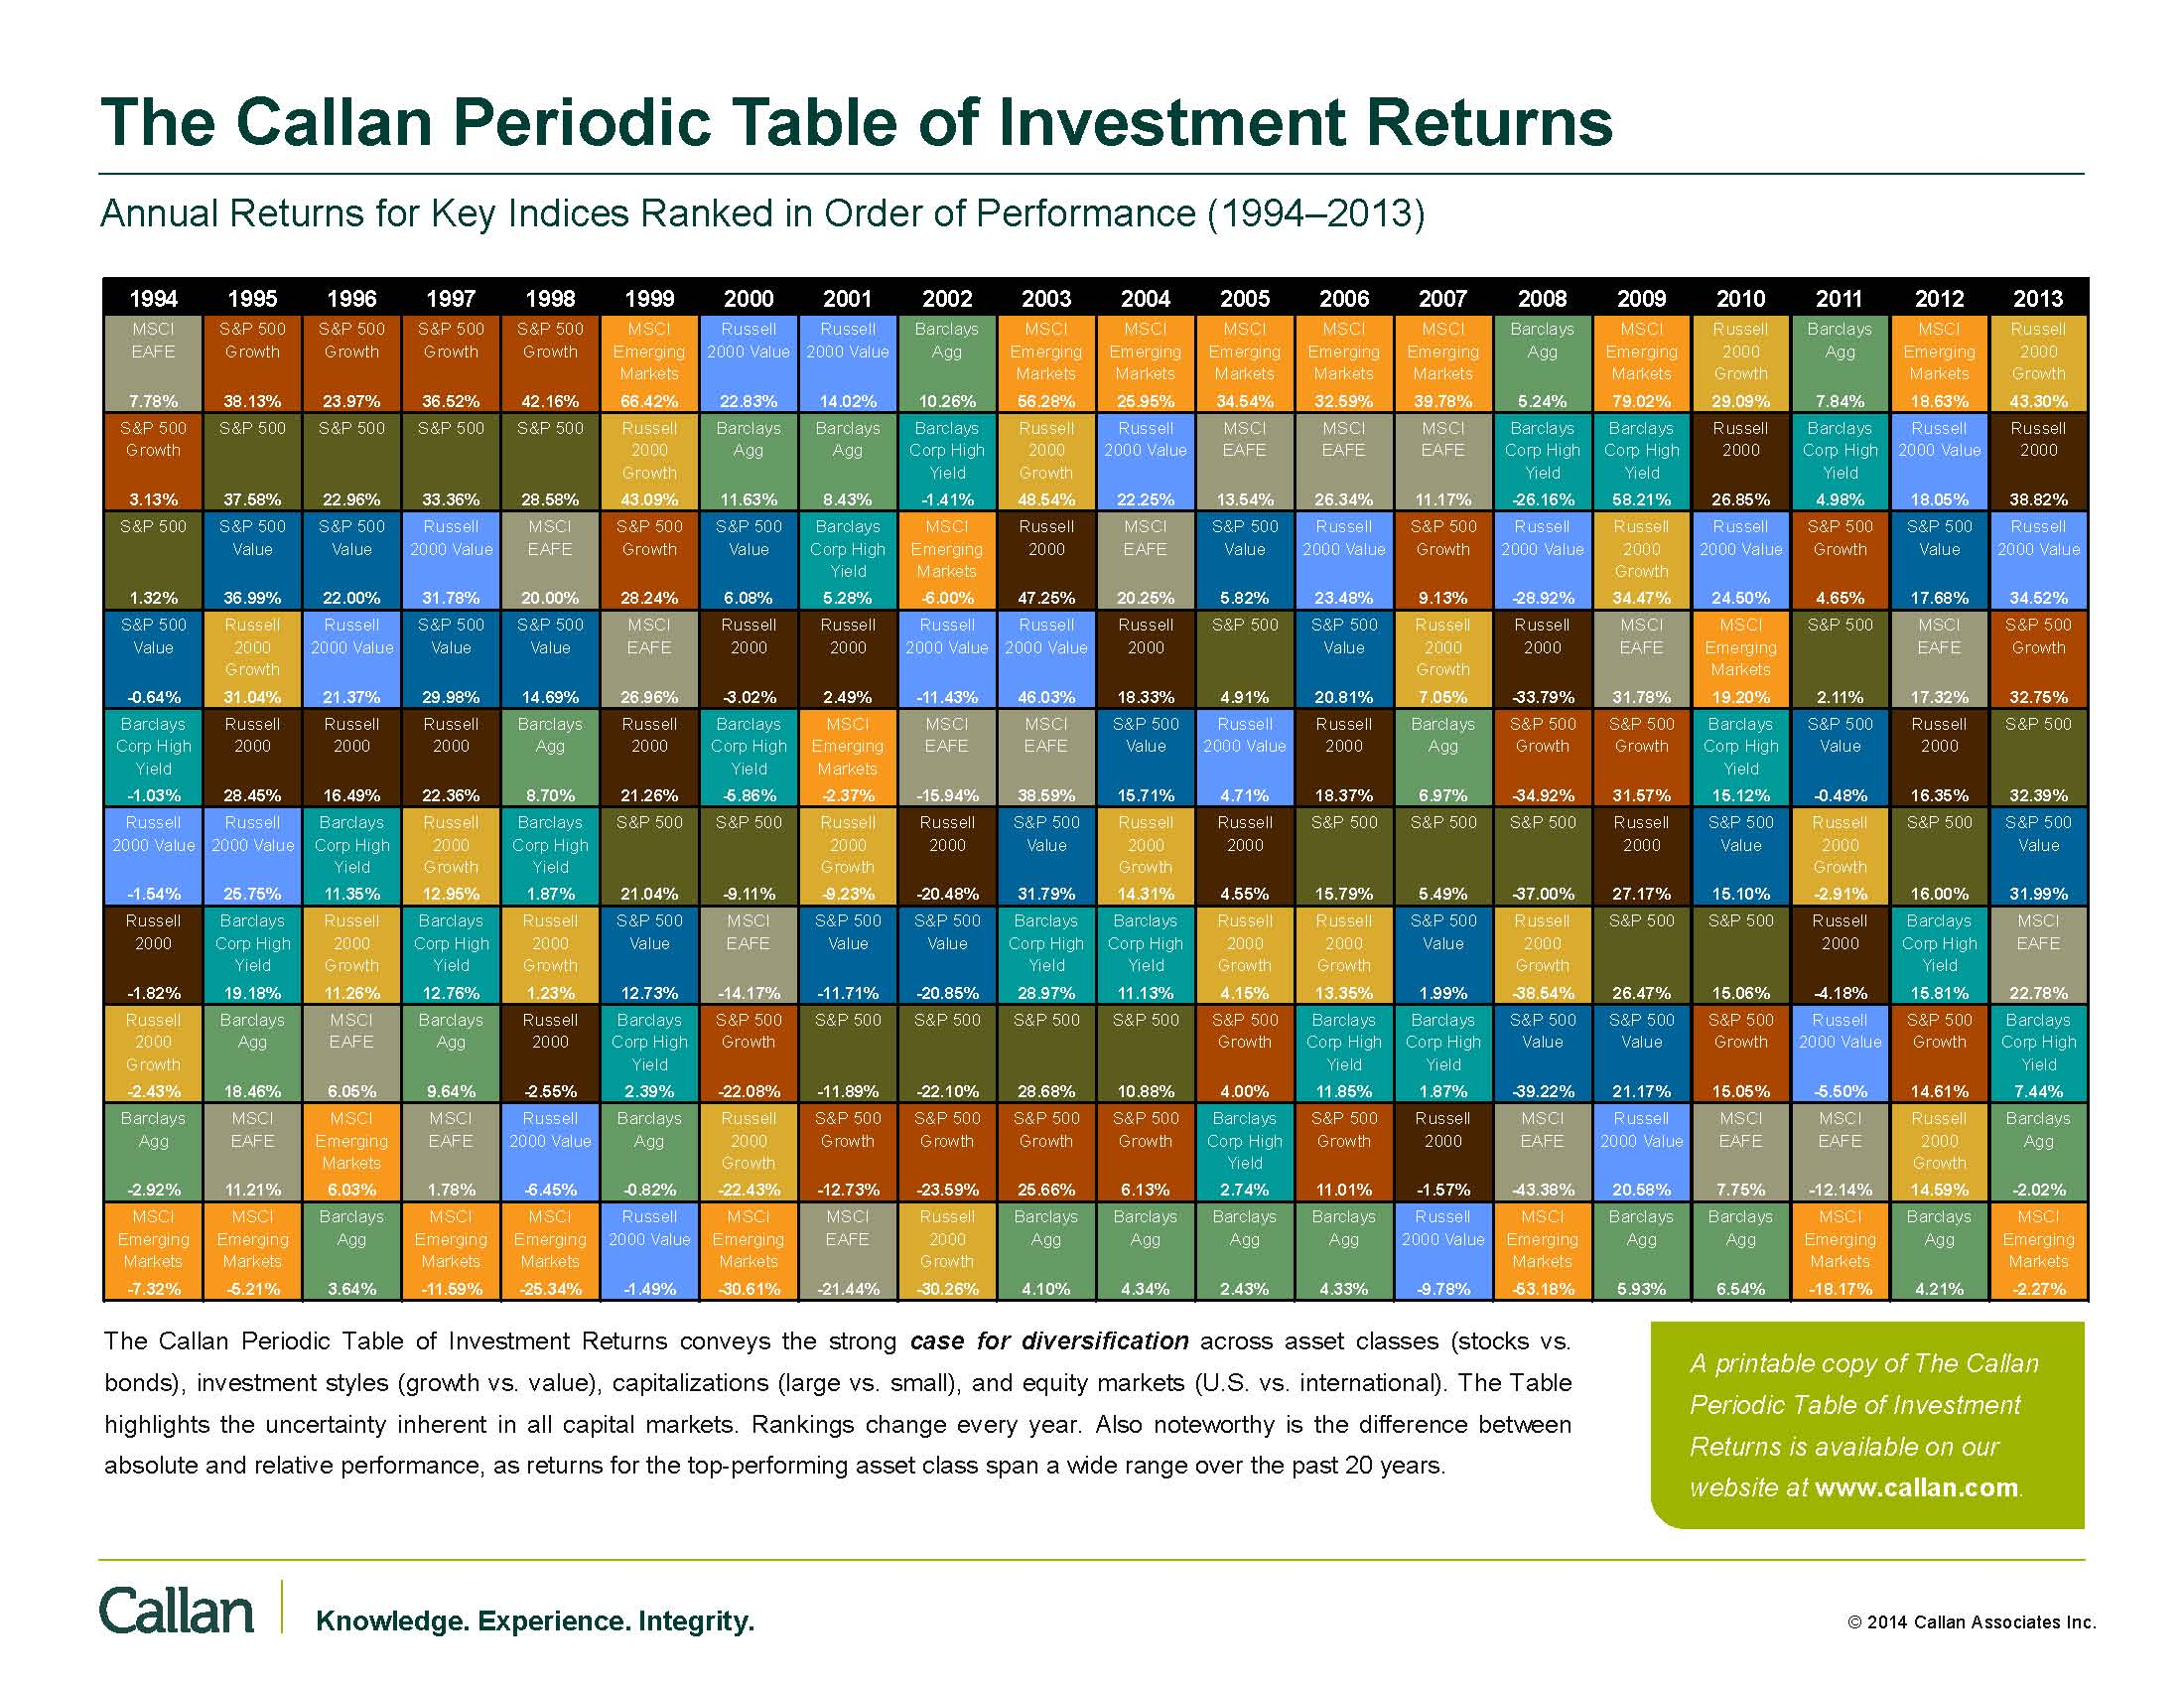 Callan periodic table of investment returns millennial finance callan periodic table of investment returns 2013page1 urtaz